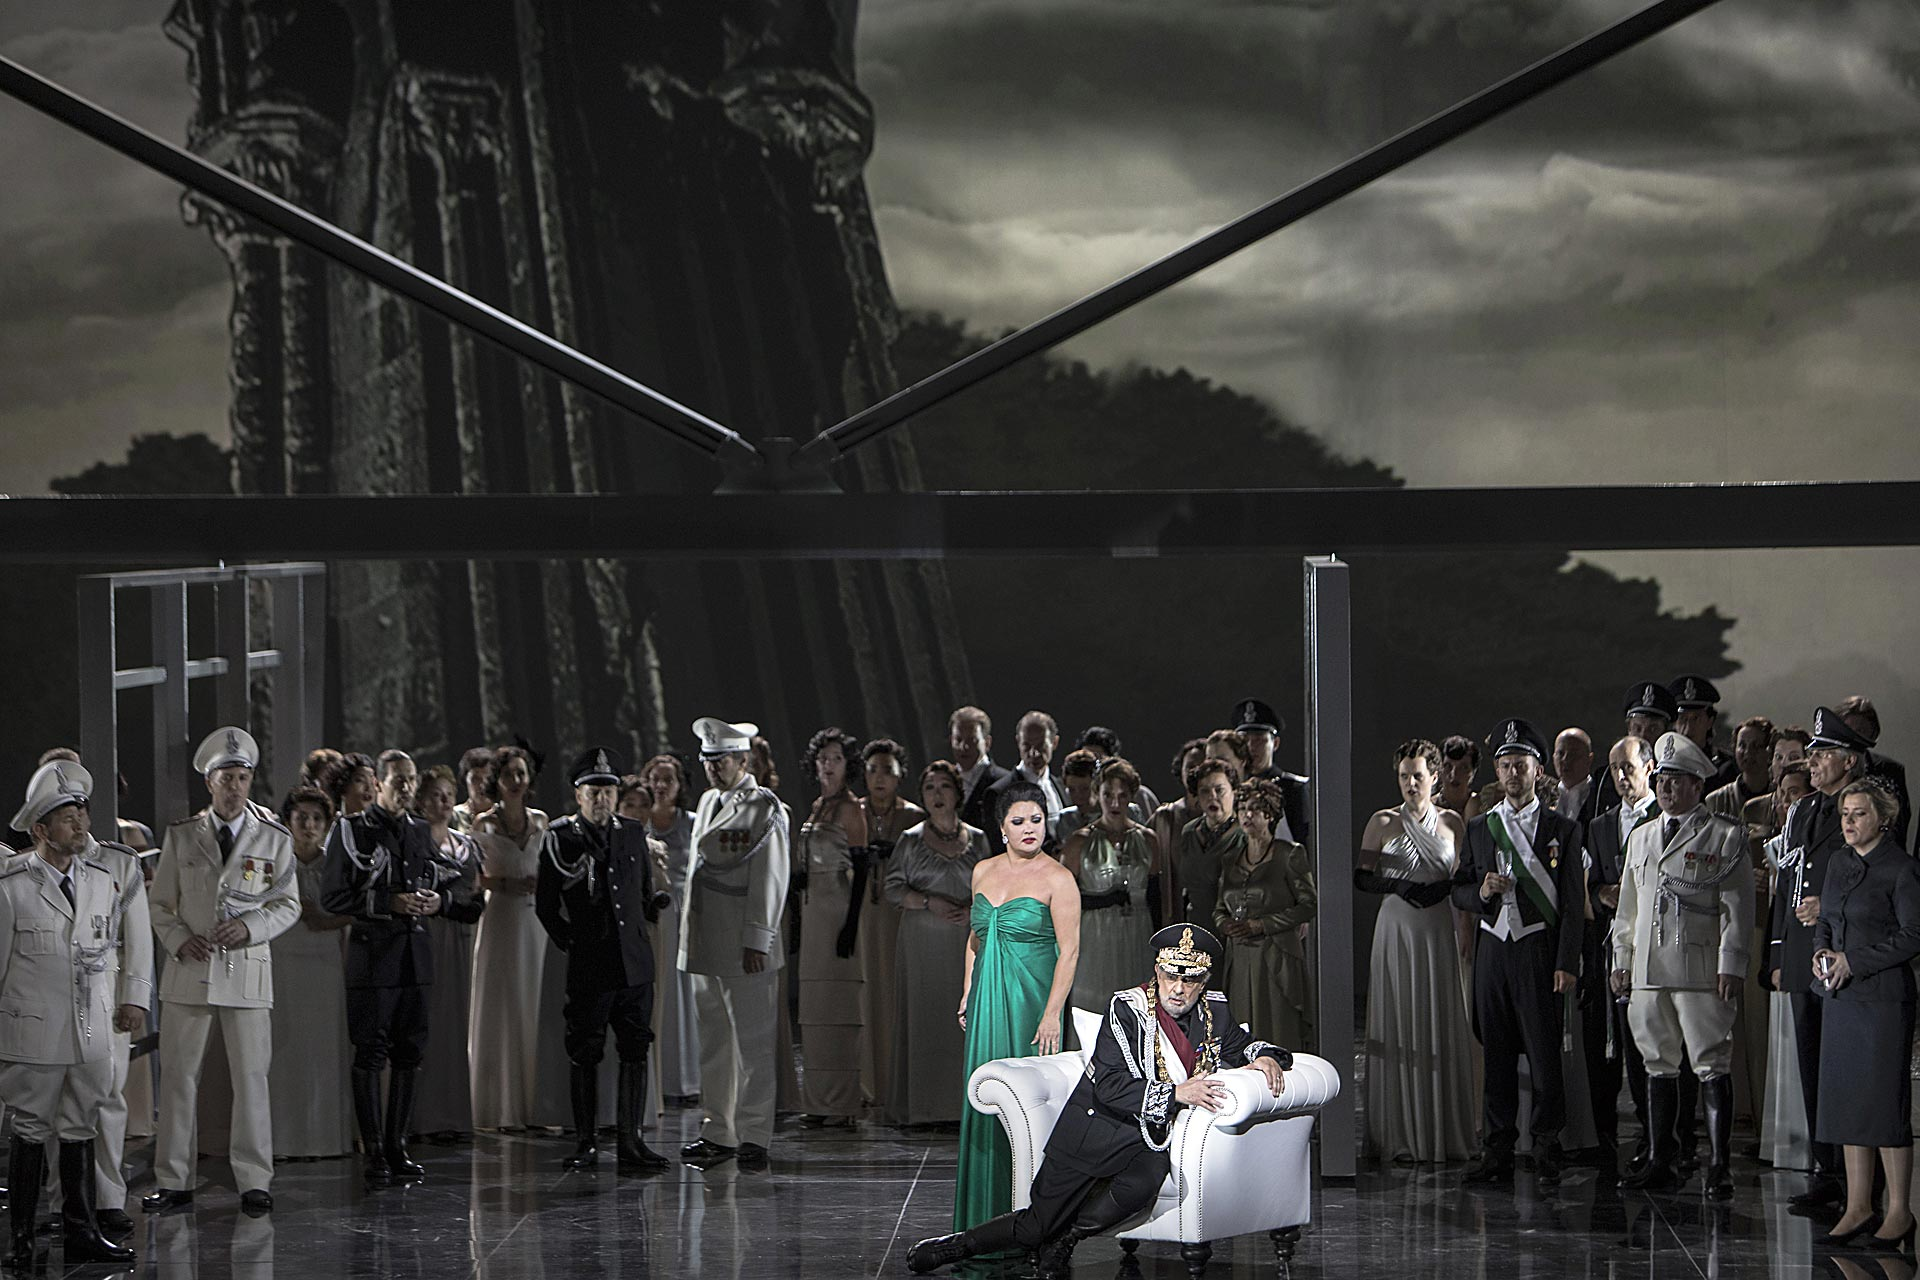 Anna Netrebko (Lady Macbeth), Plácido Domingo (Macbeth), Ensemble | Foto © Bernd Uhlig | Macbeth 85